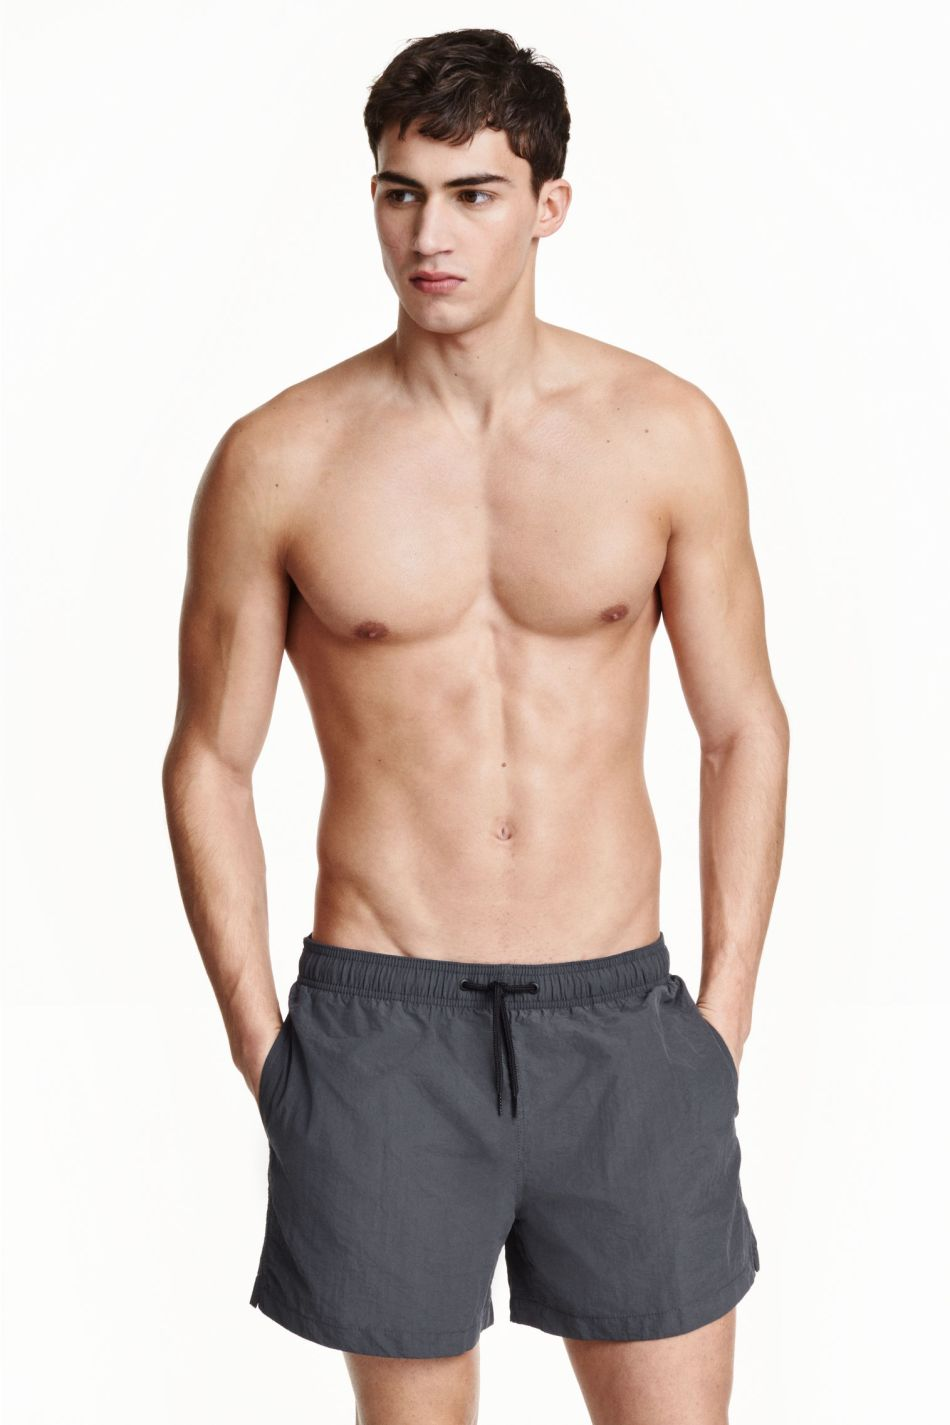 Get that laidback beach style at the vacation this year. We have swimwear in all styles and models.